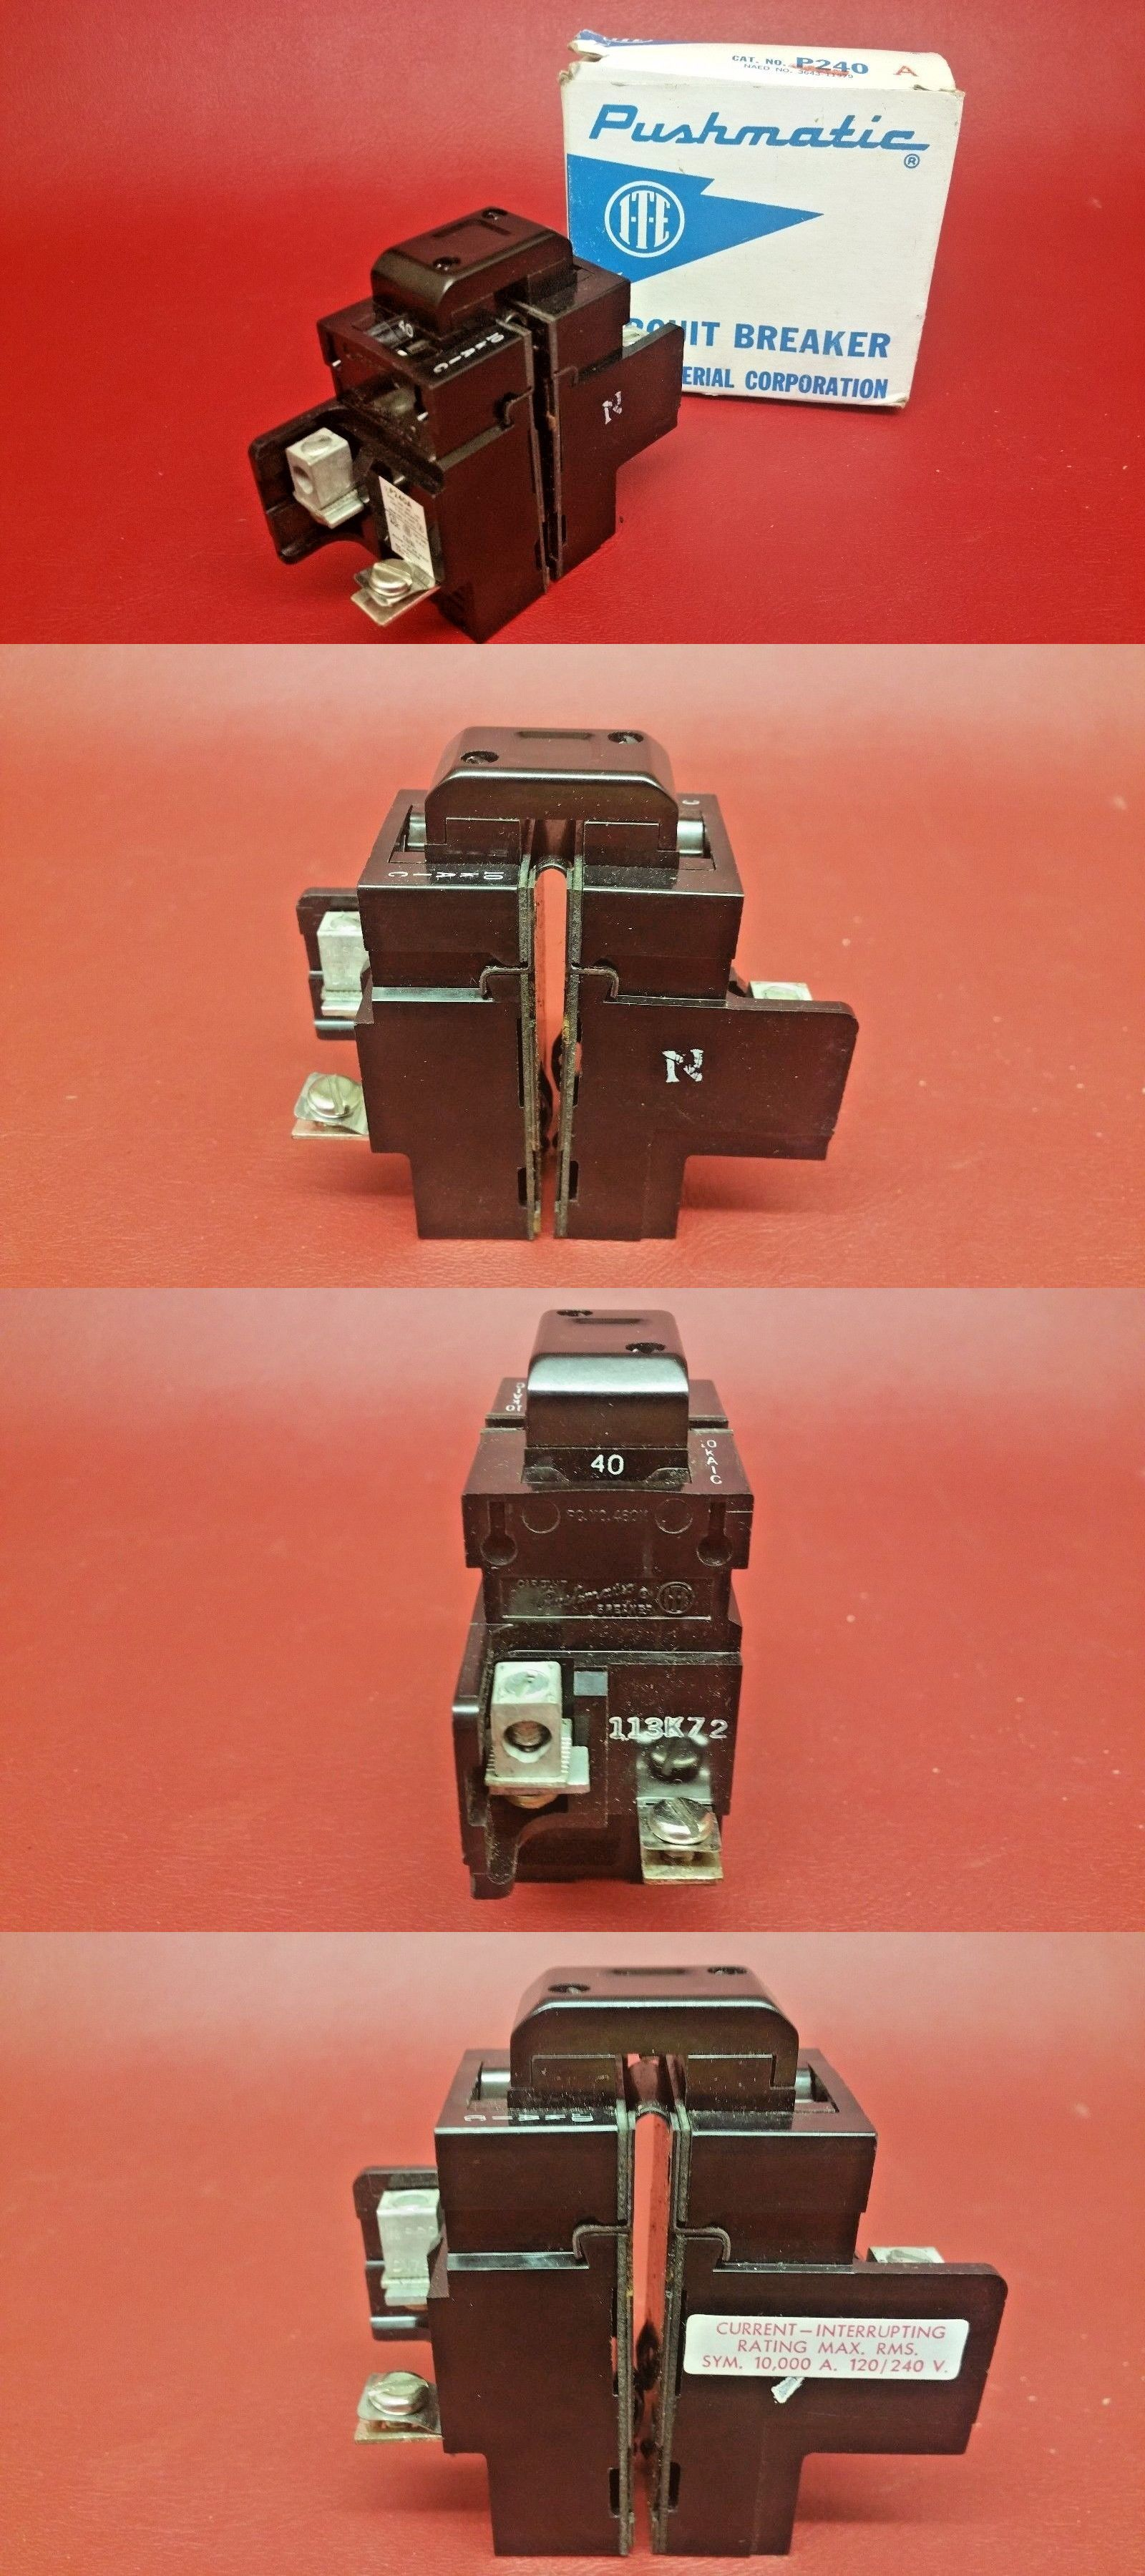 Circuit Breakers and Fuse Bo 20596: New 40 Amp Pushmatic ... on